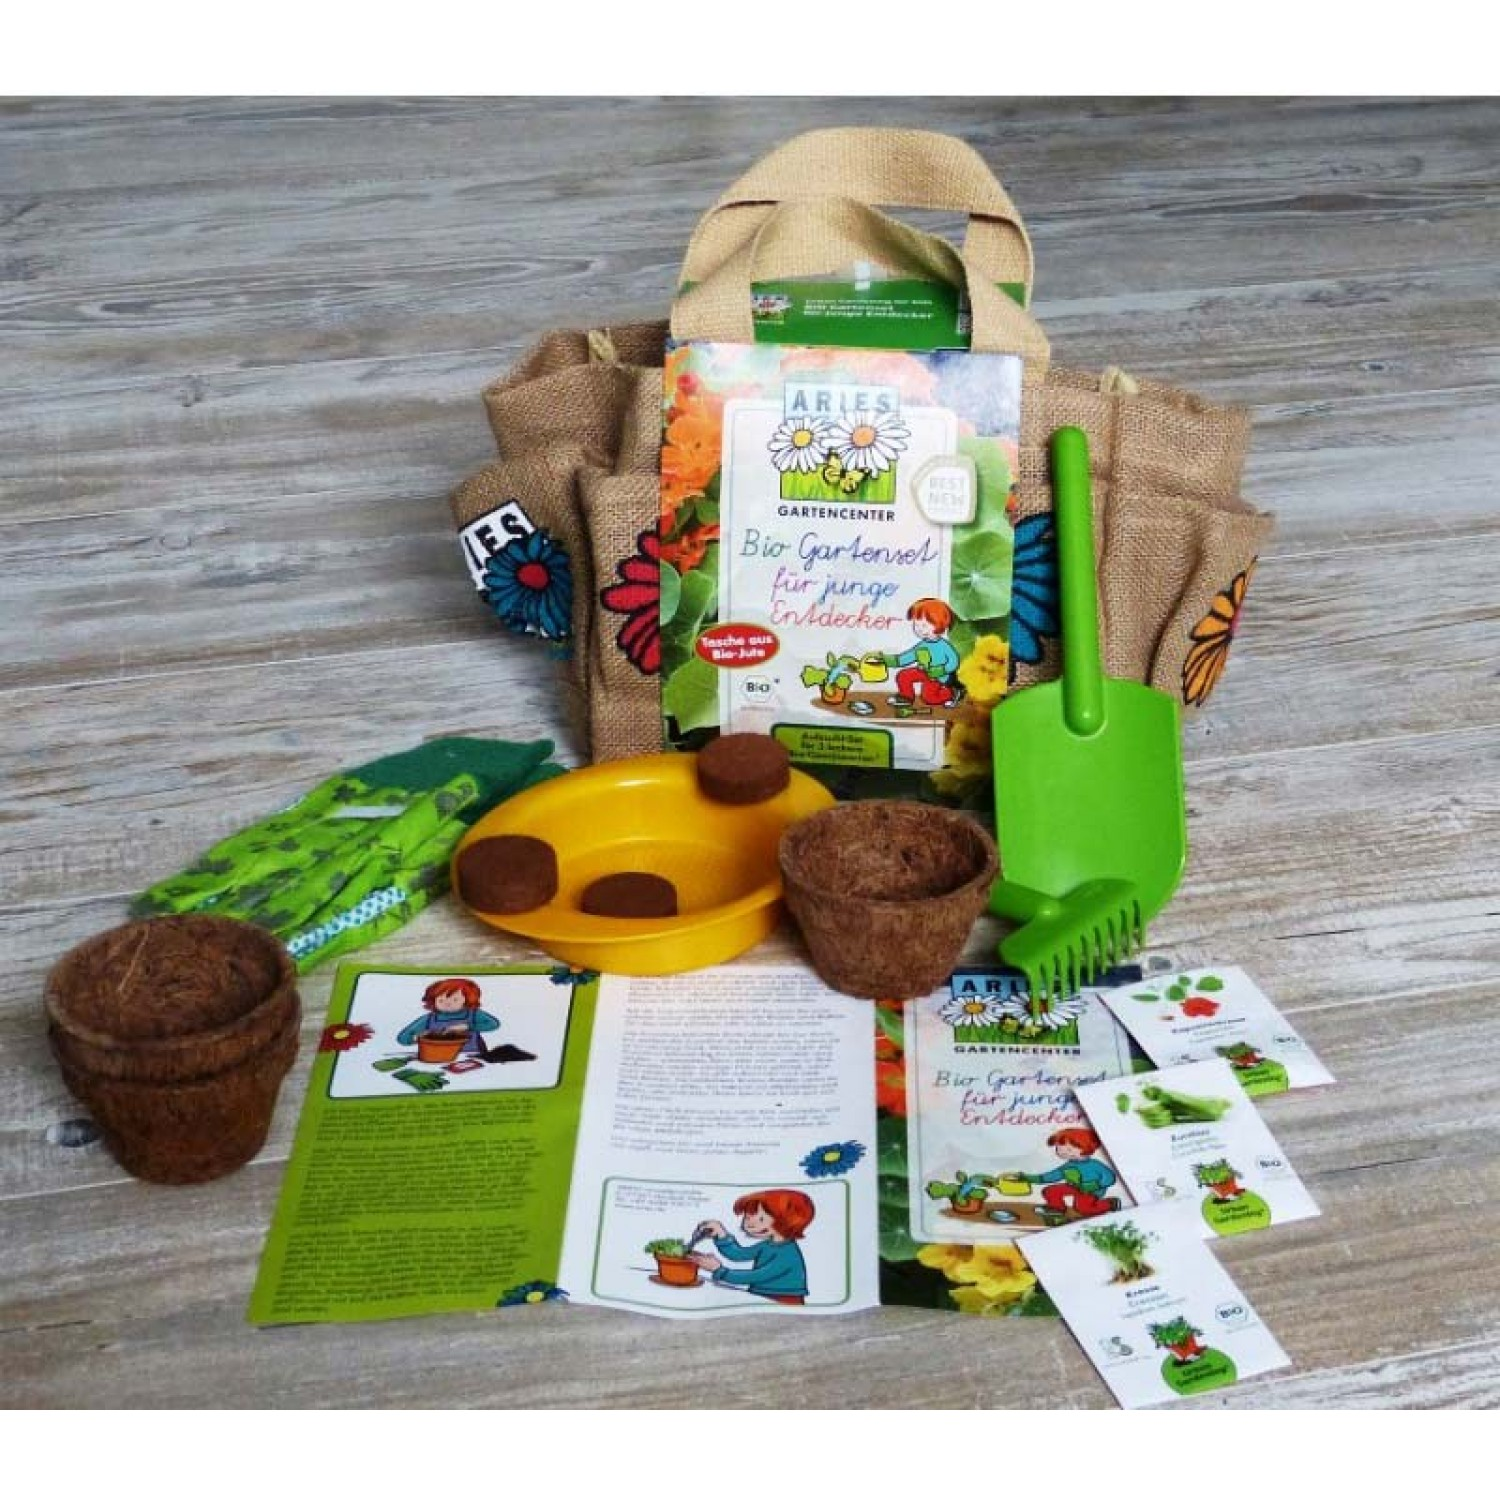 Children's Organic Garden Set by Aries Eco Products